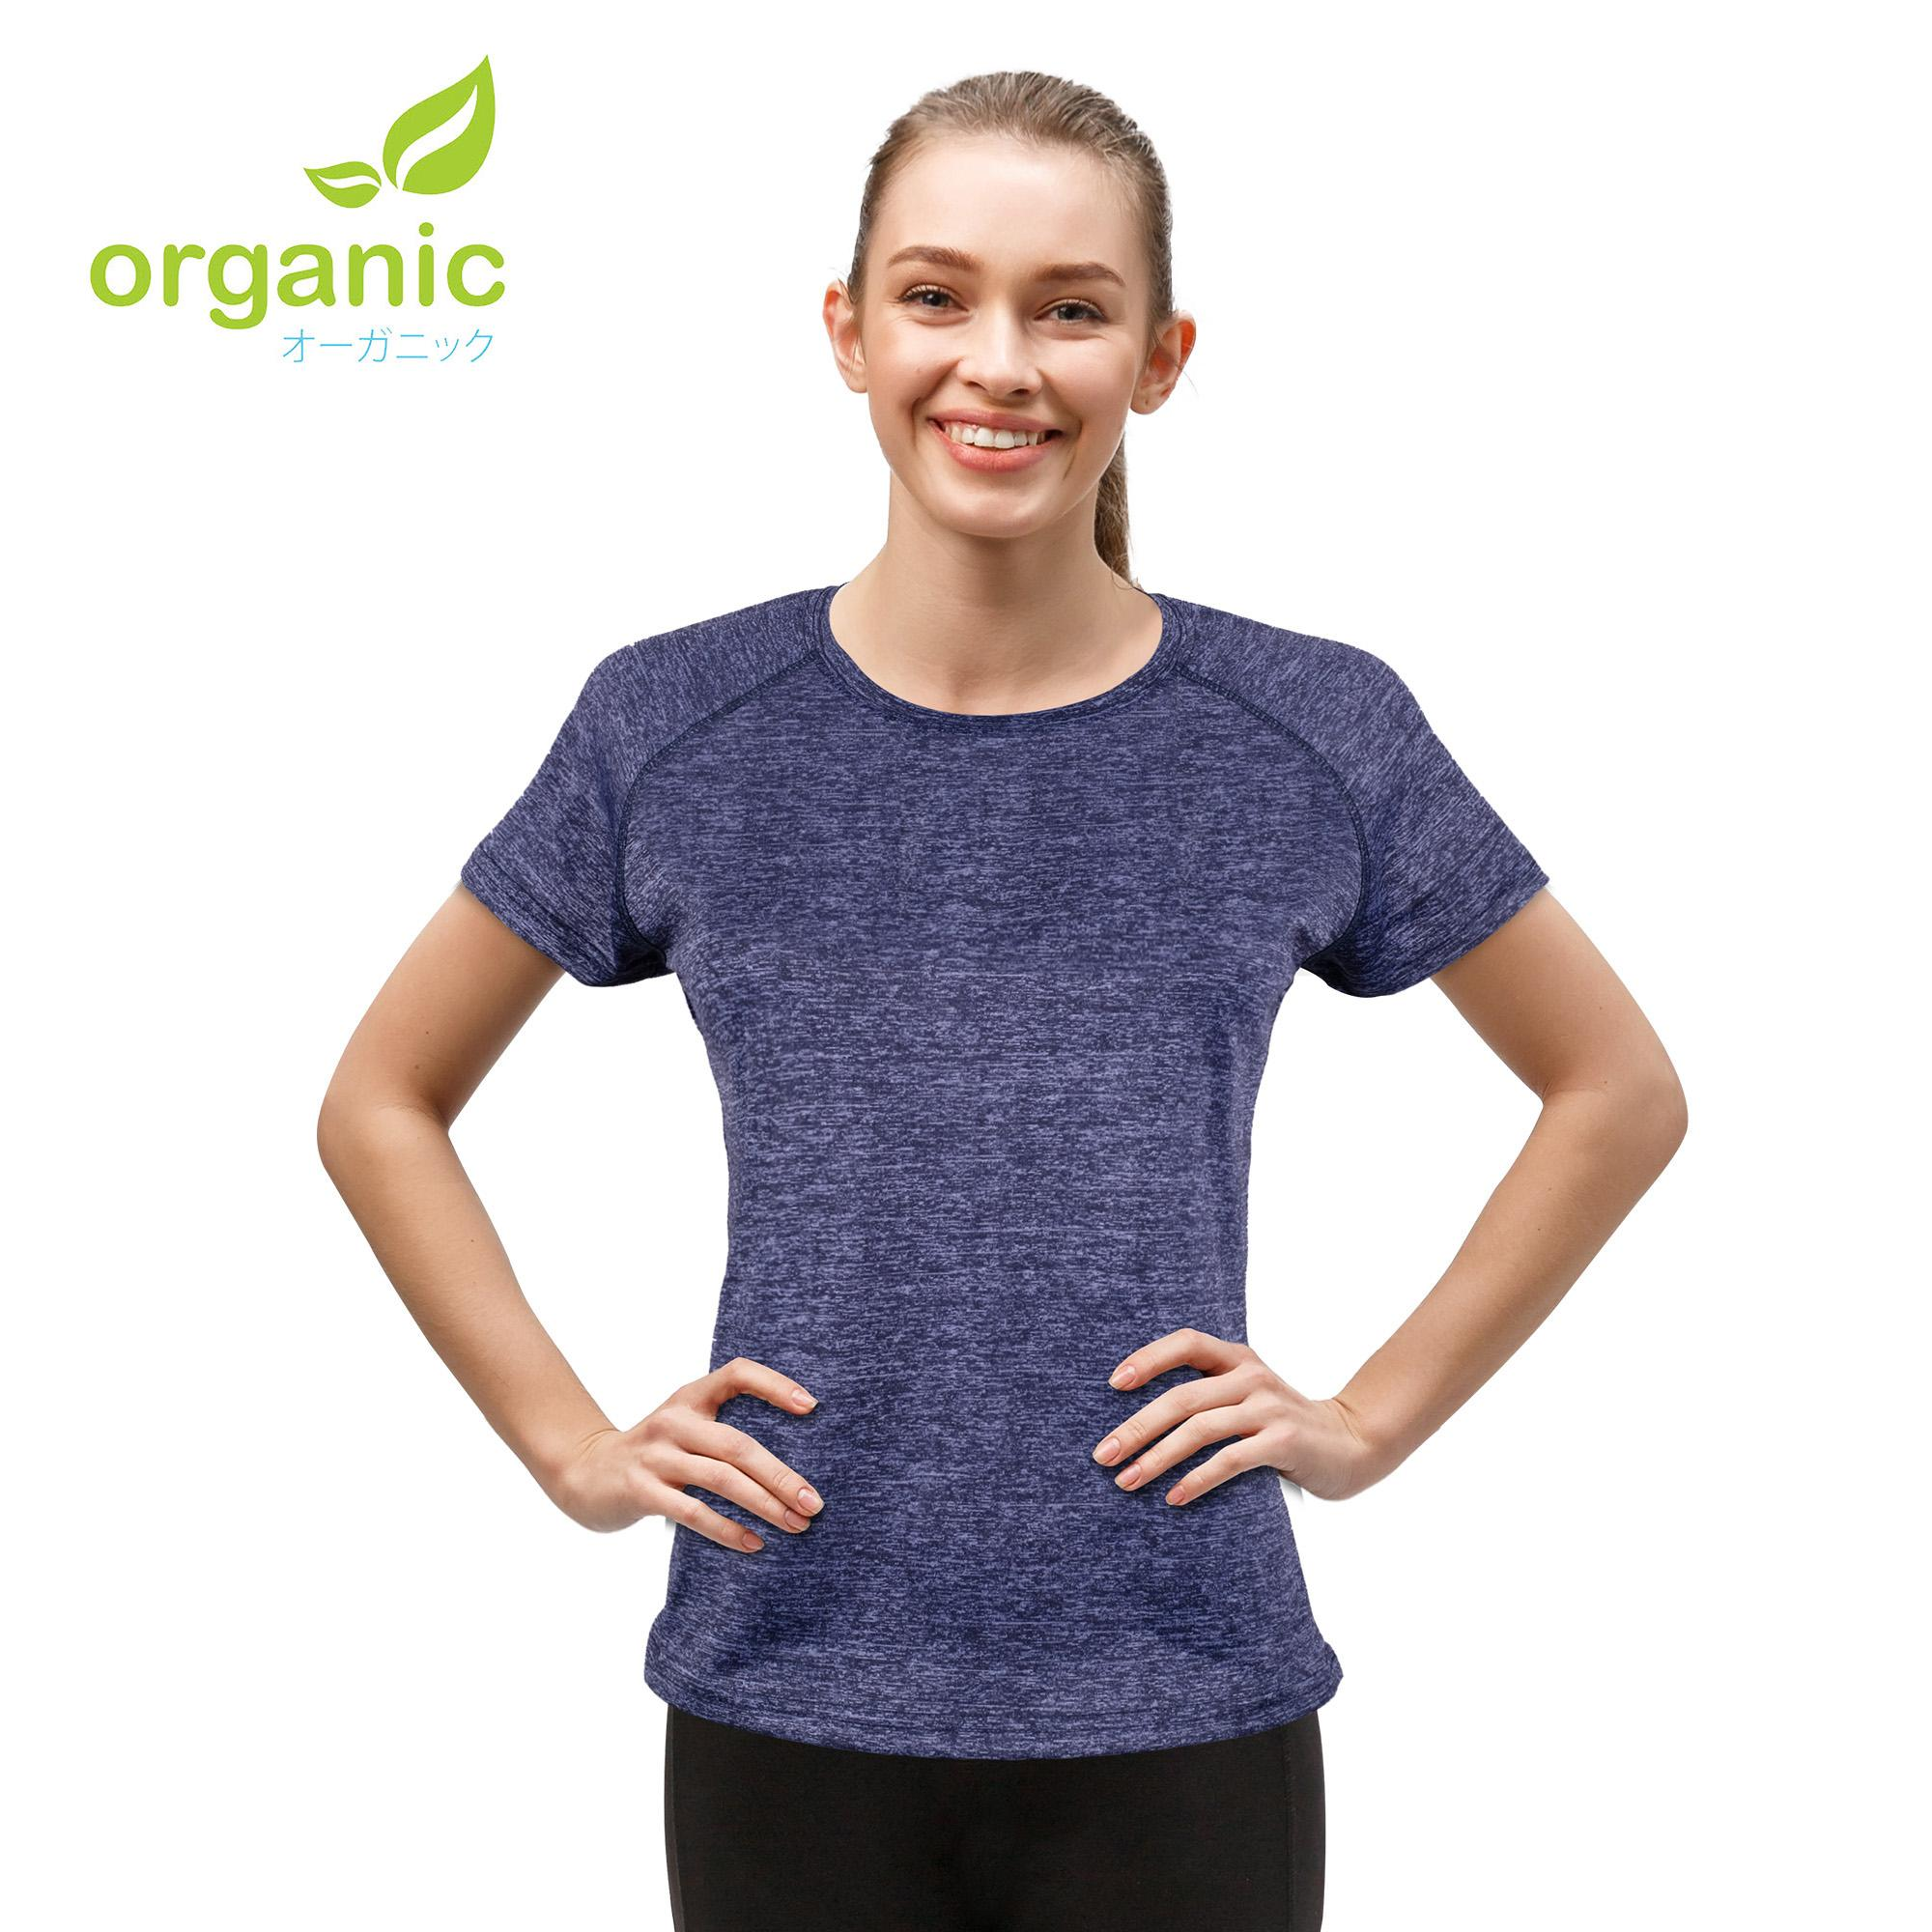 Organic Ladies Cool Gear Active Sports Wear Shirt Gym Training Dry Dri Fit  Fitness Gym Shirt Athletic Dry Fit Shirt For Running Jogging Yoga Workout